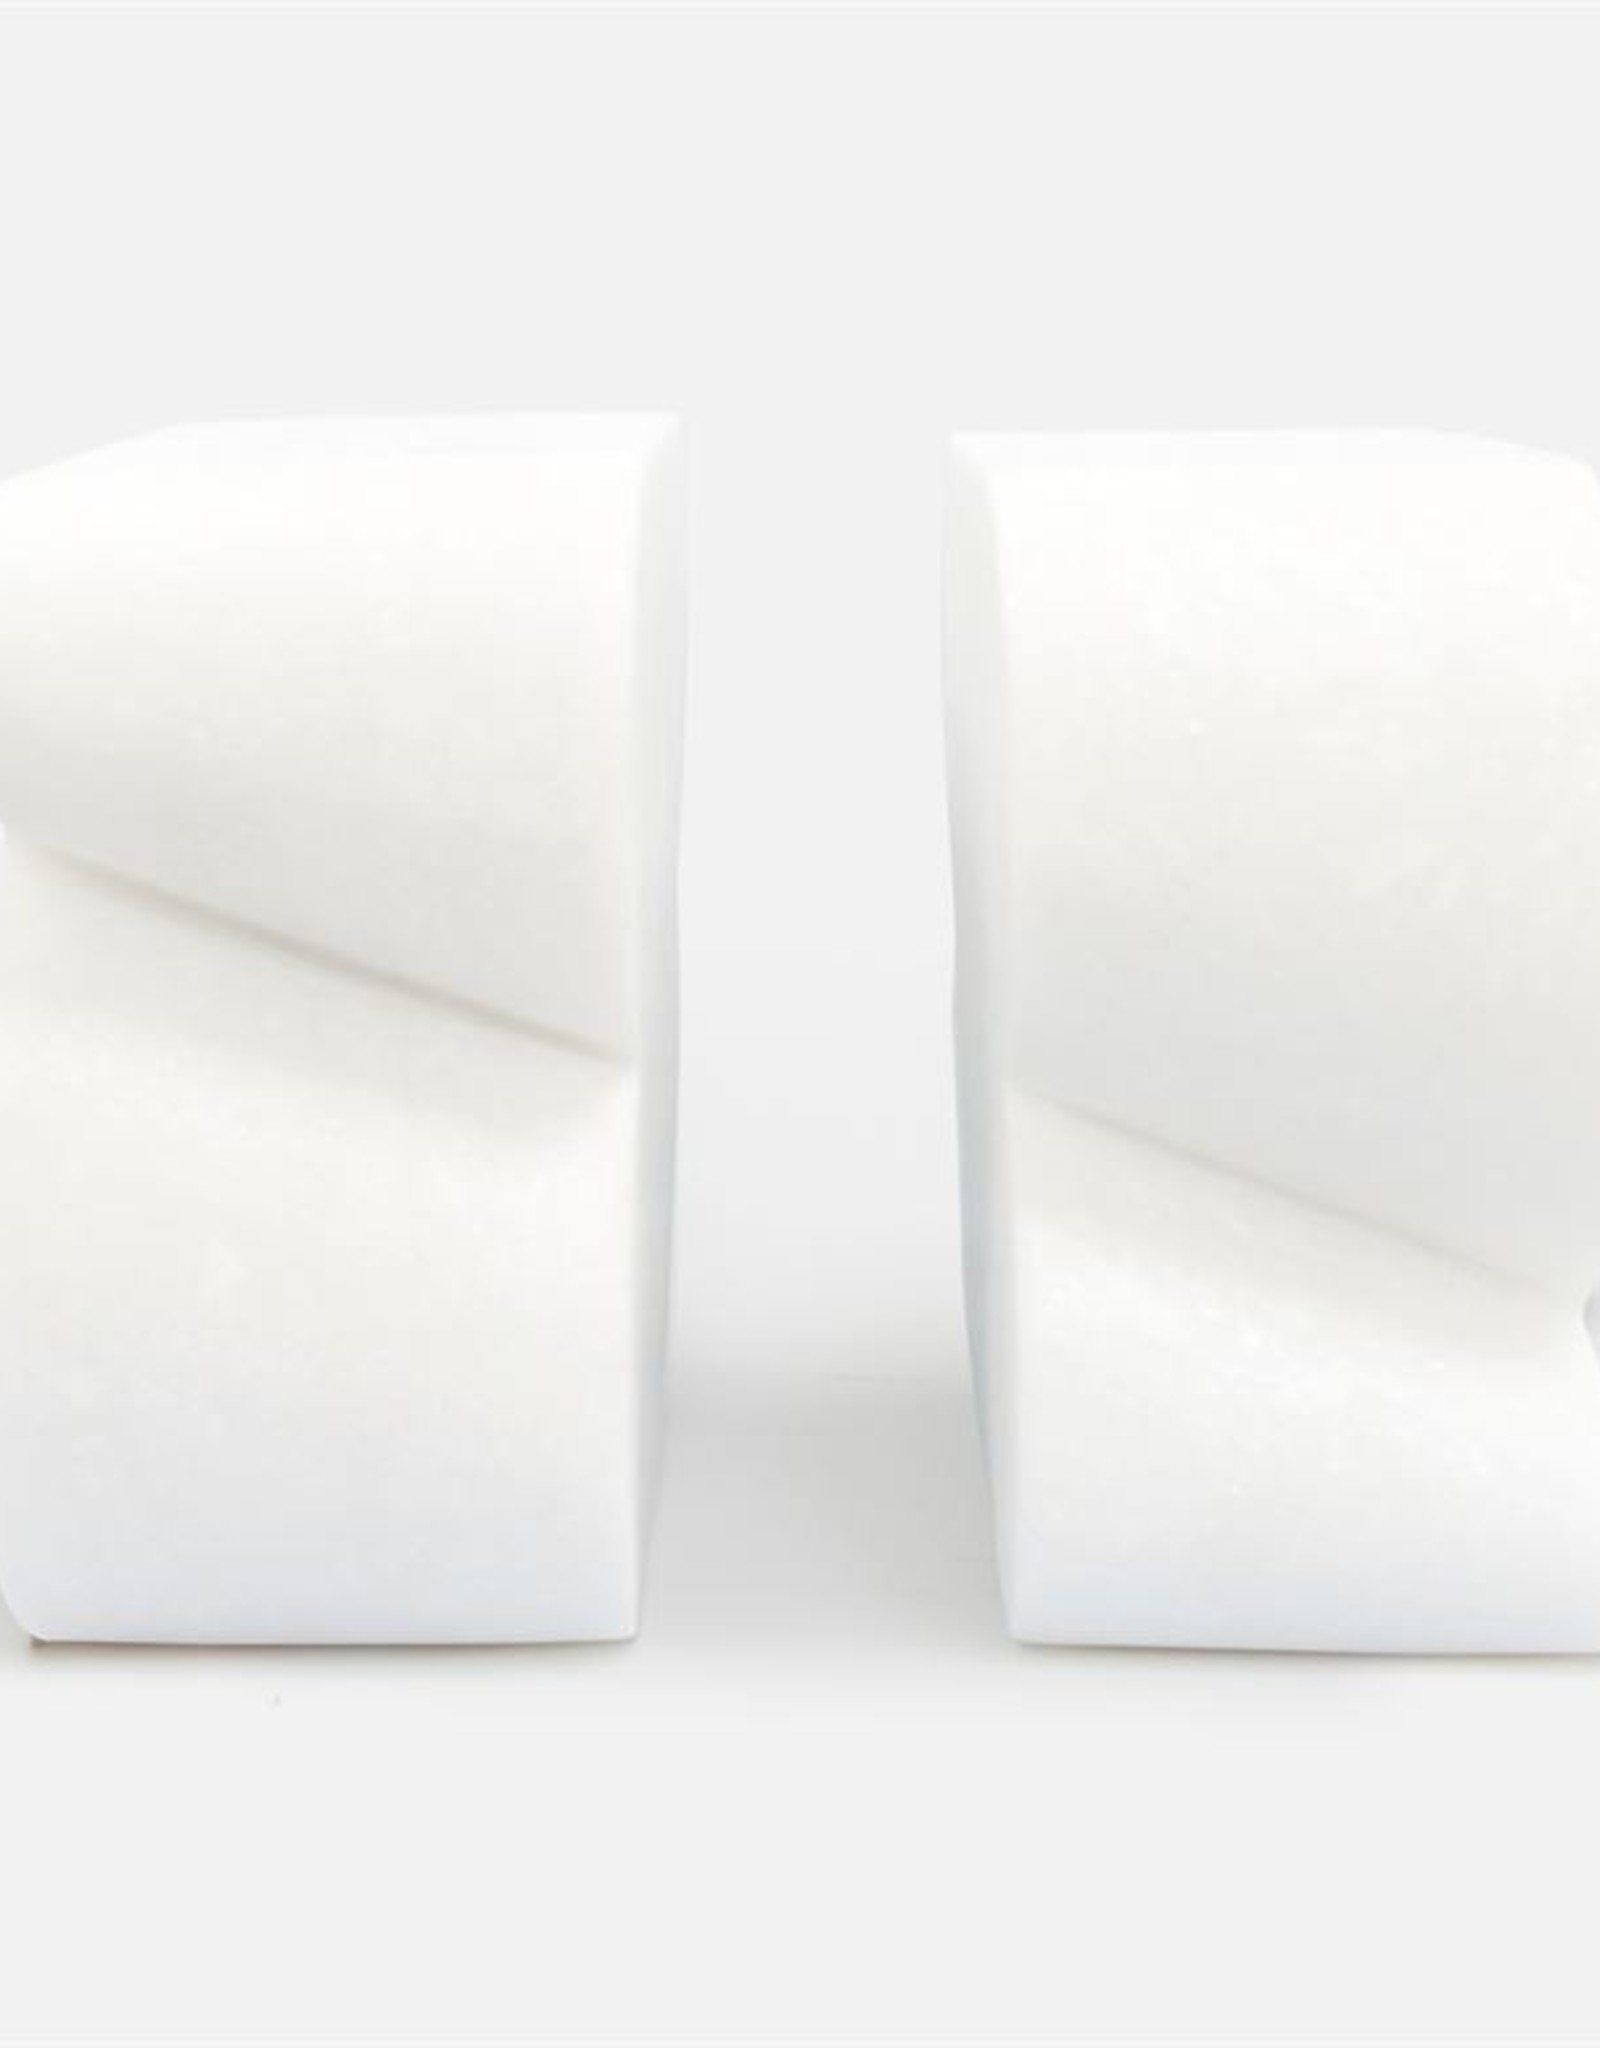 Made Goods Calysta Marble Bookends - Set of 2